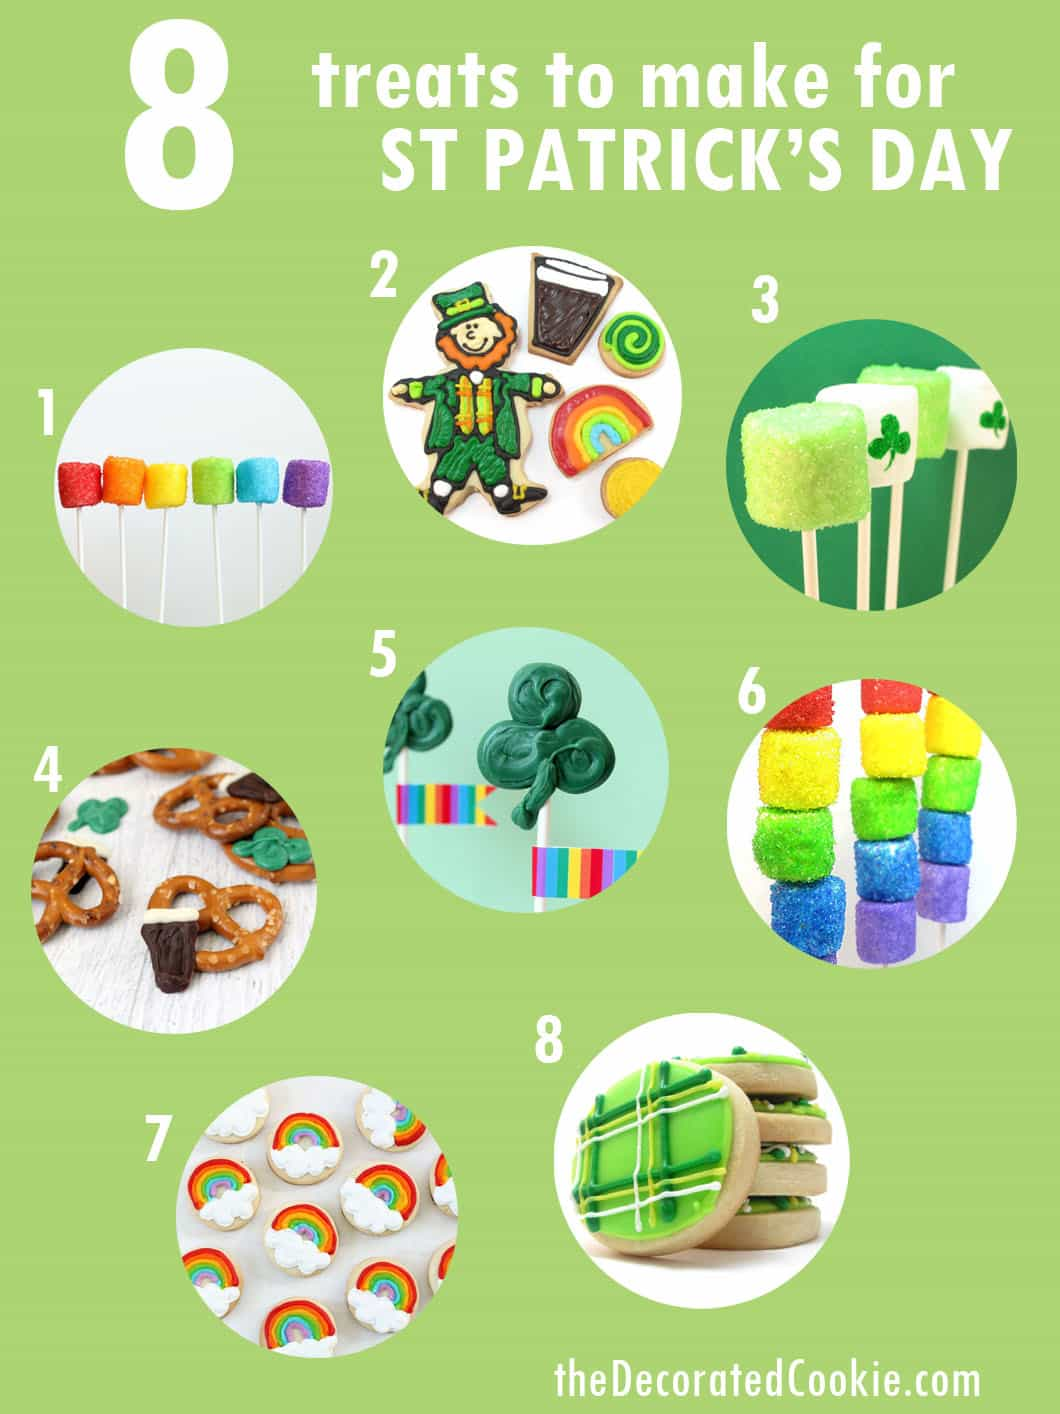 8 treats to make for St. Patrick's Day